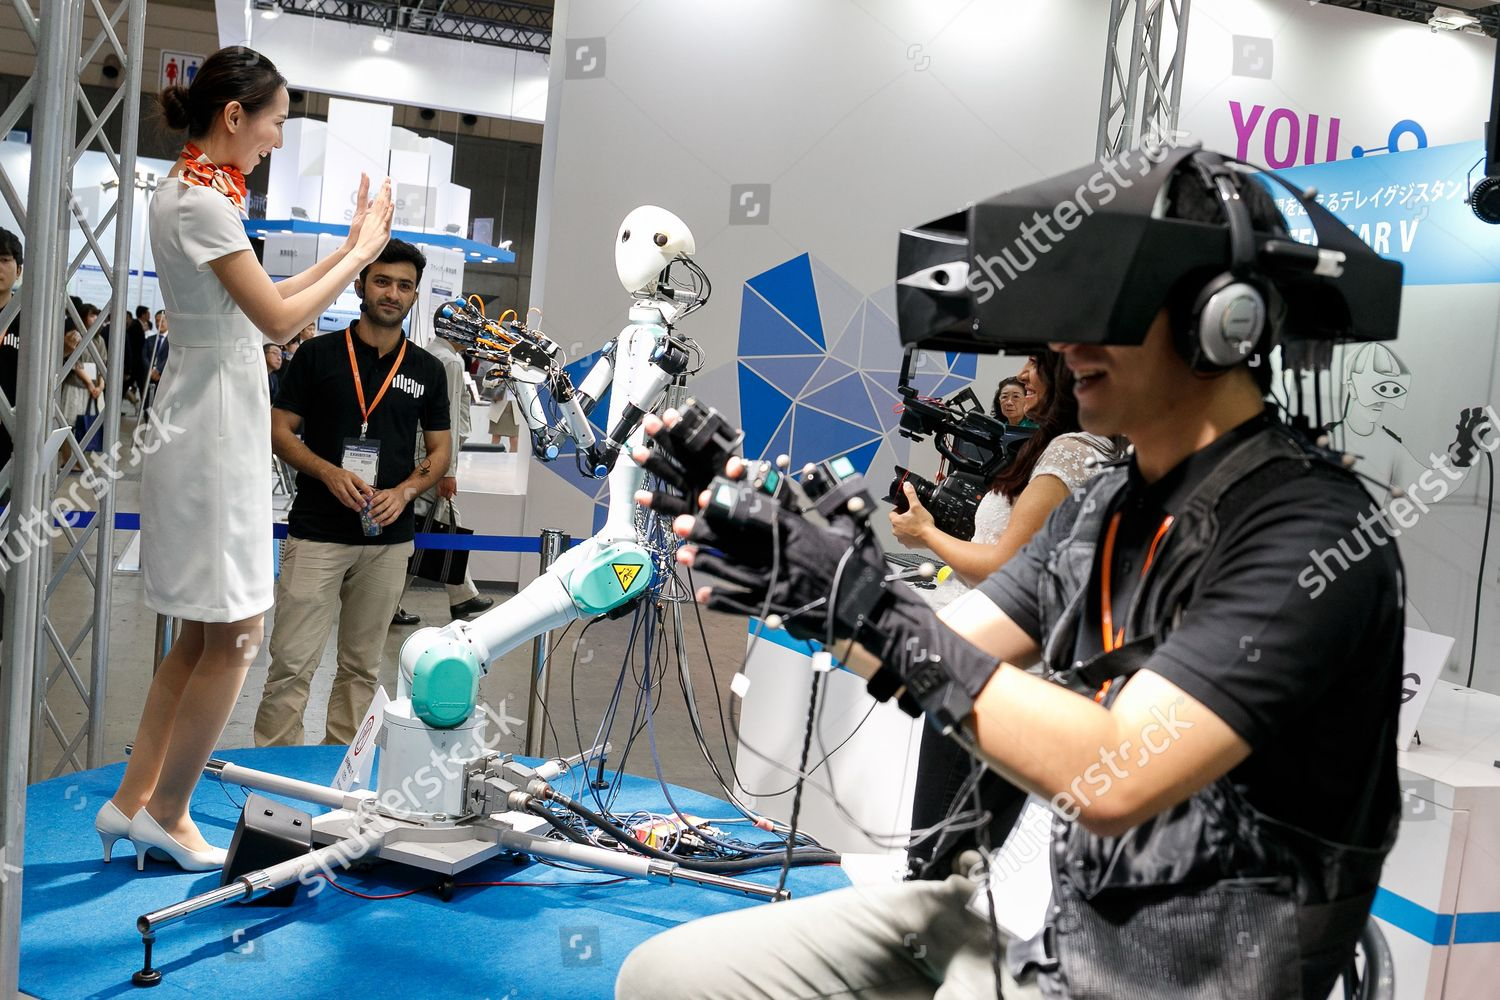 Exhibition Booth Assistant : Booth assistant interacts masterslave robot telesar v editorial